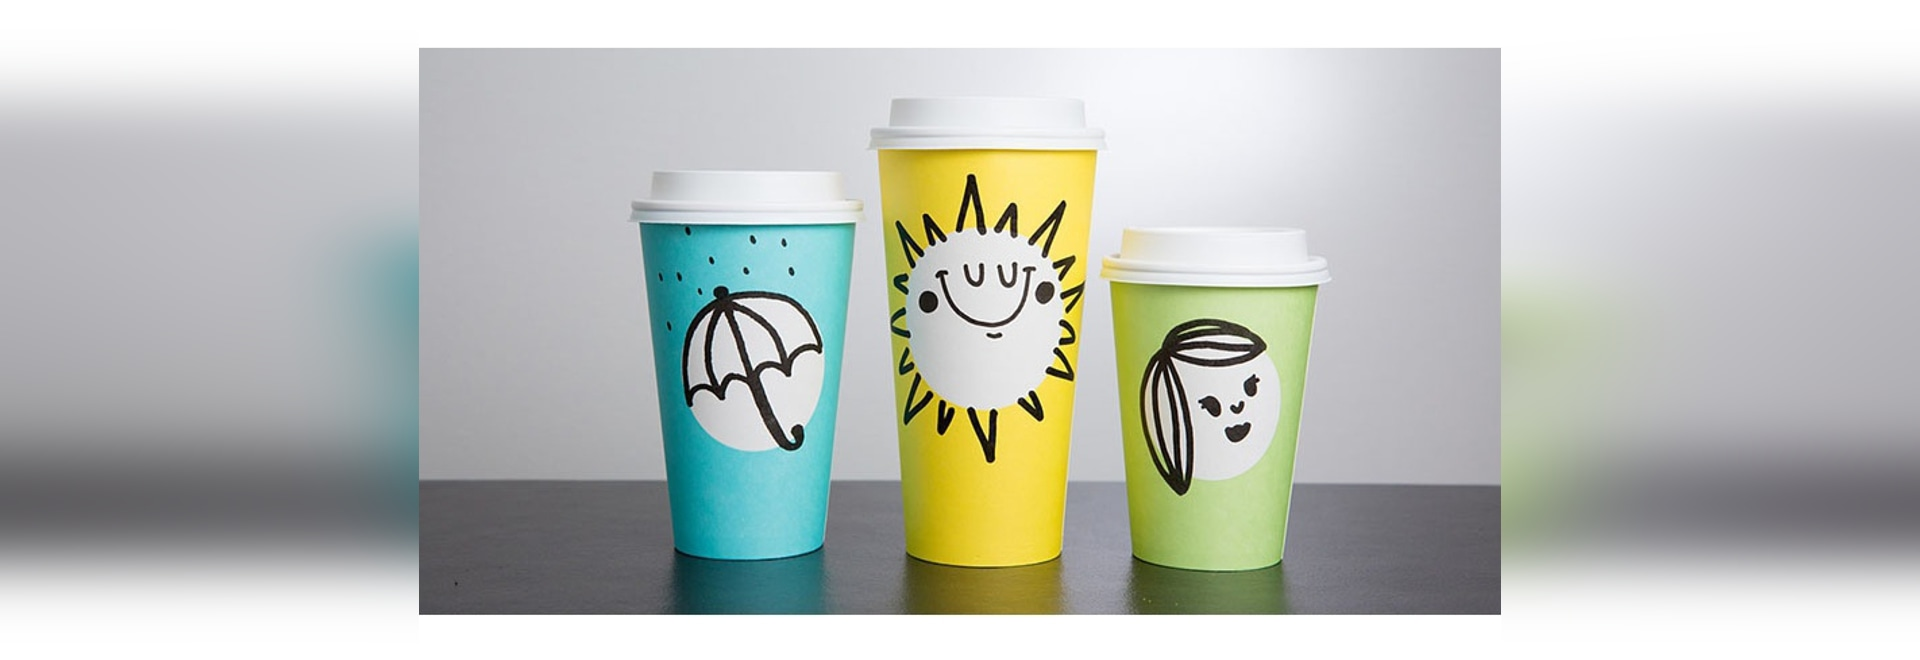 Starbucks Unveils New Spring-Themed Cups in Three Fun Colors